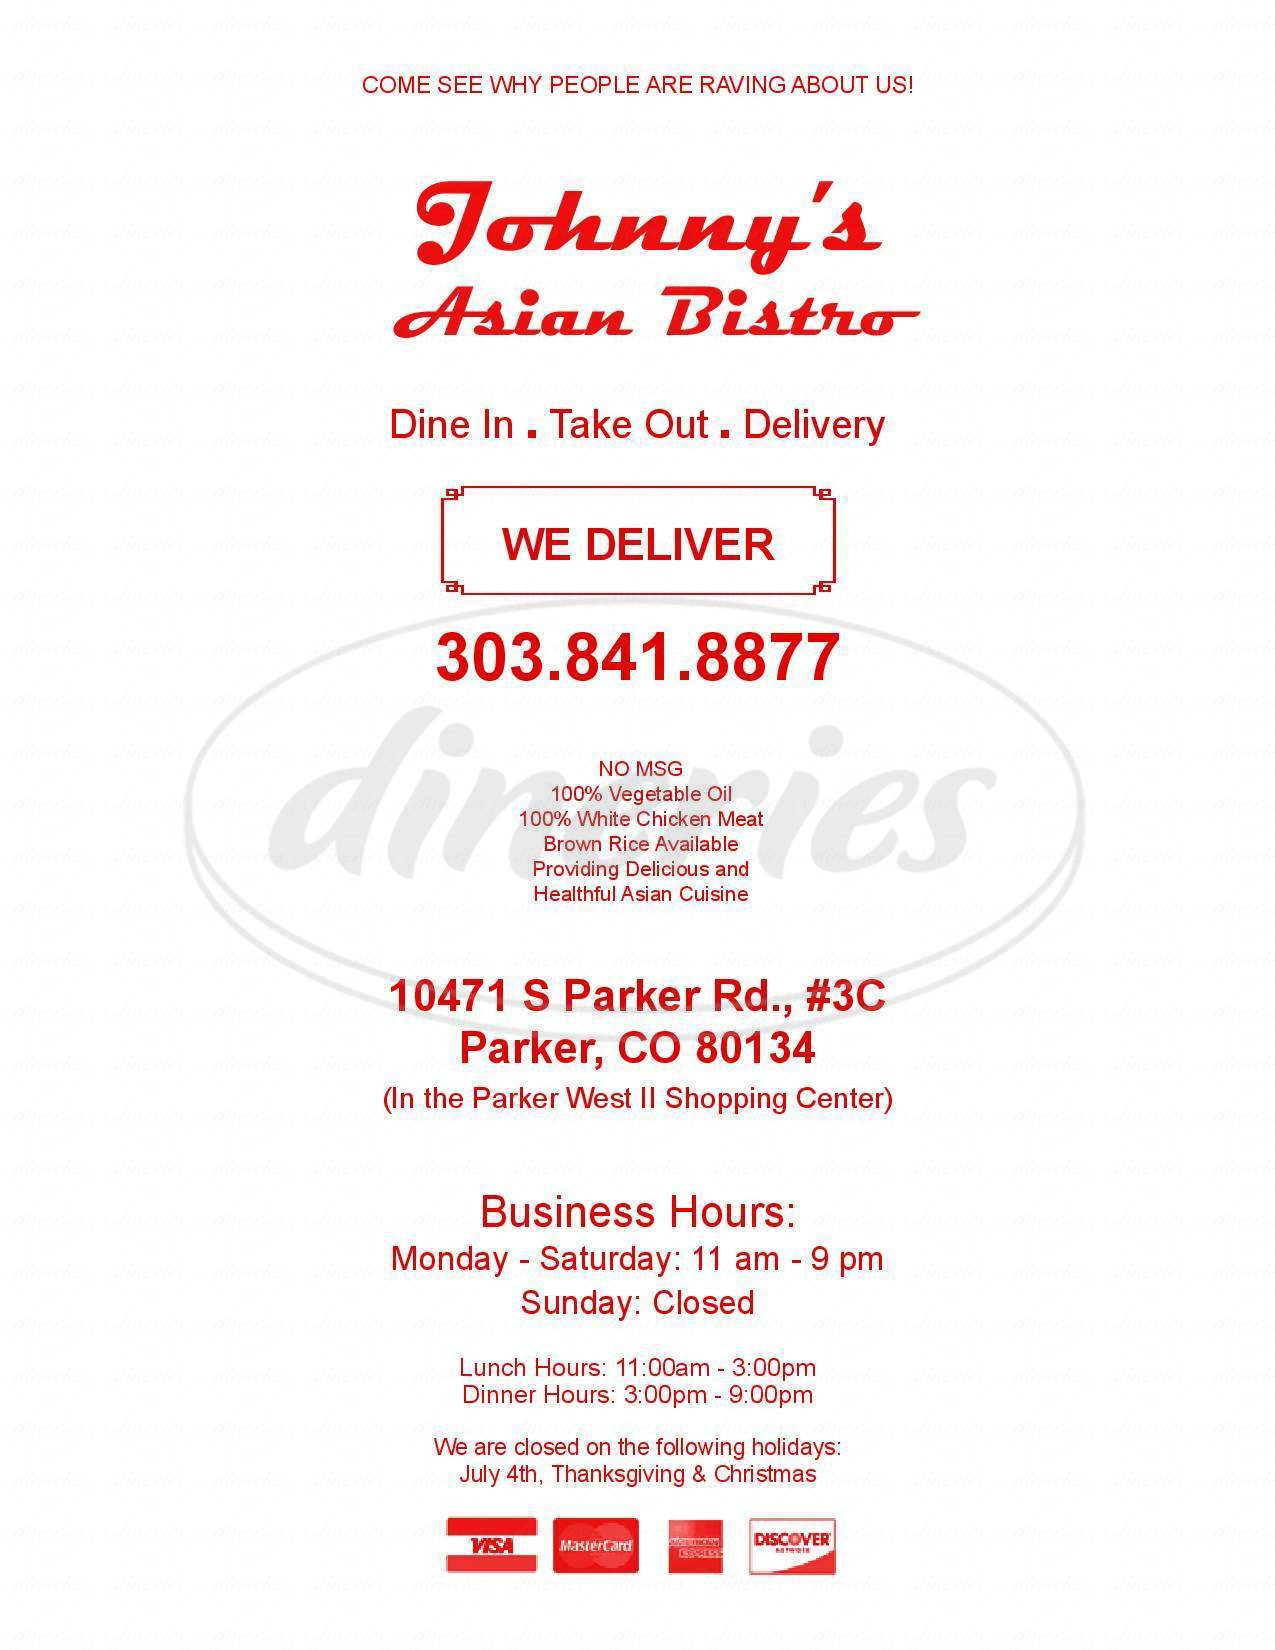 menu for Johnny's Asian Bistro